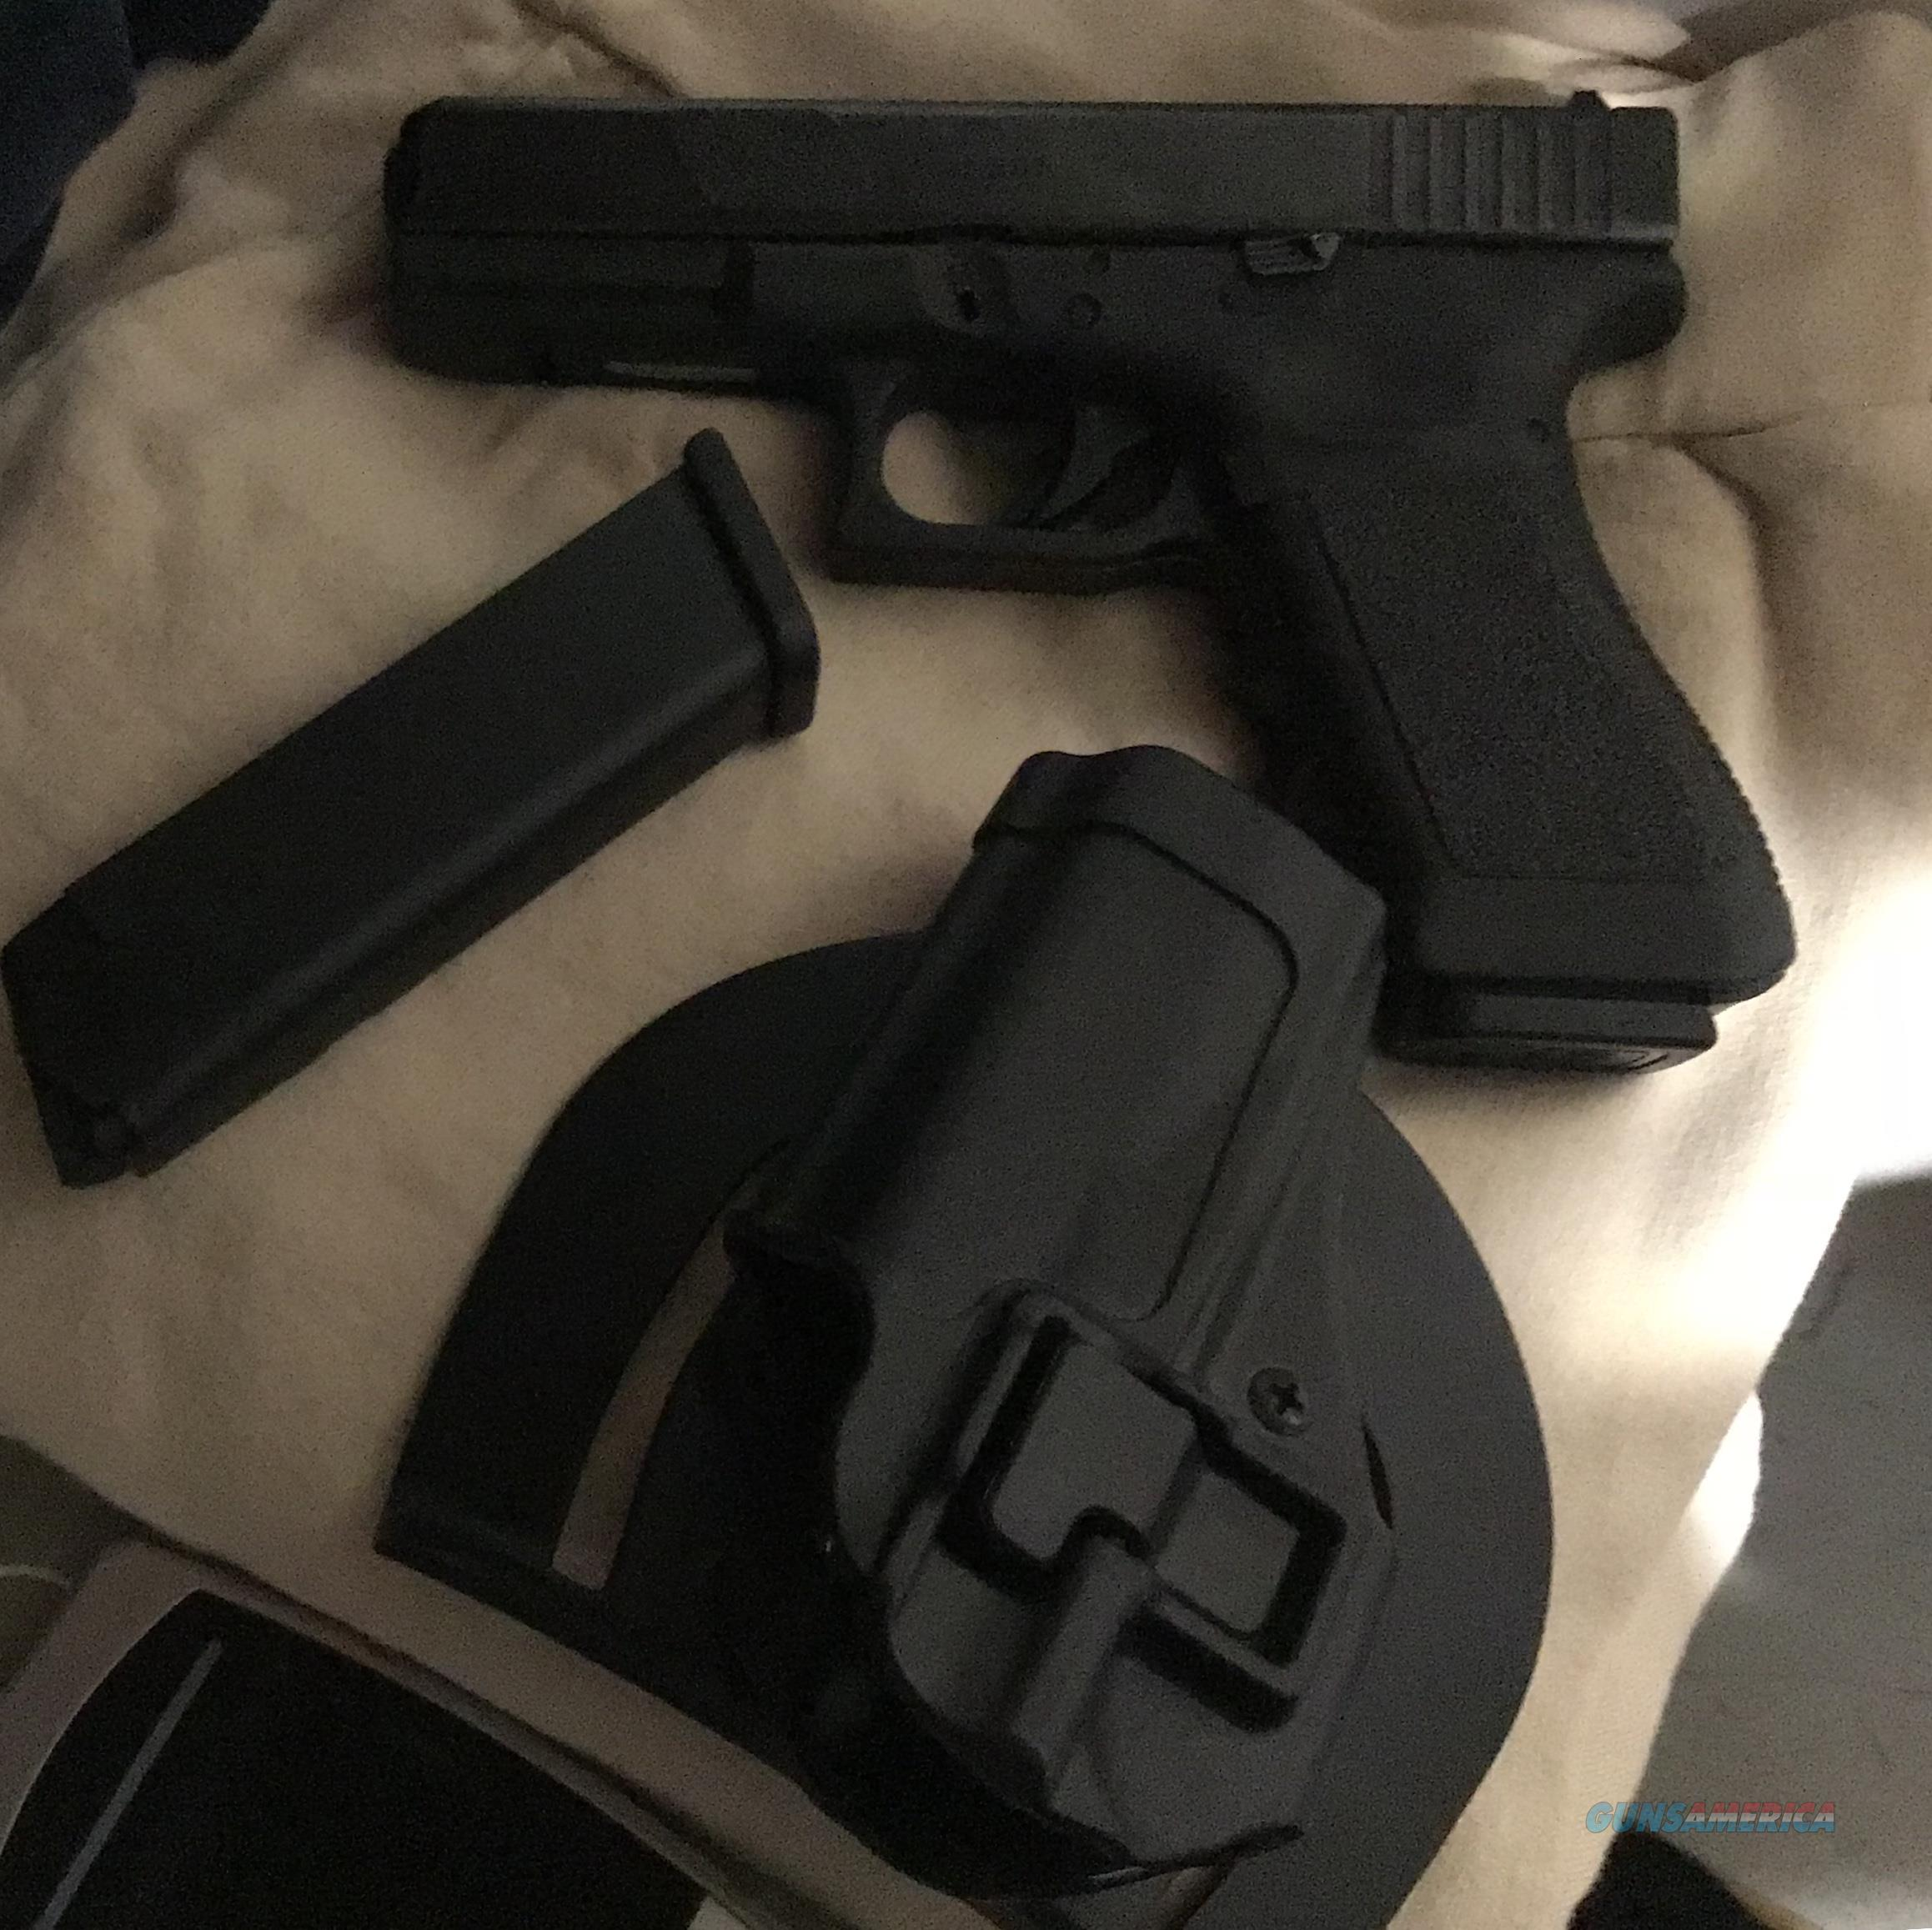 Used Glock 37 .45 GAP for sale  Guns > Pistols > Glock Pistols > 37